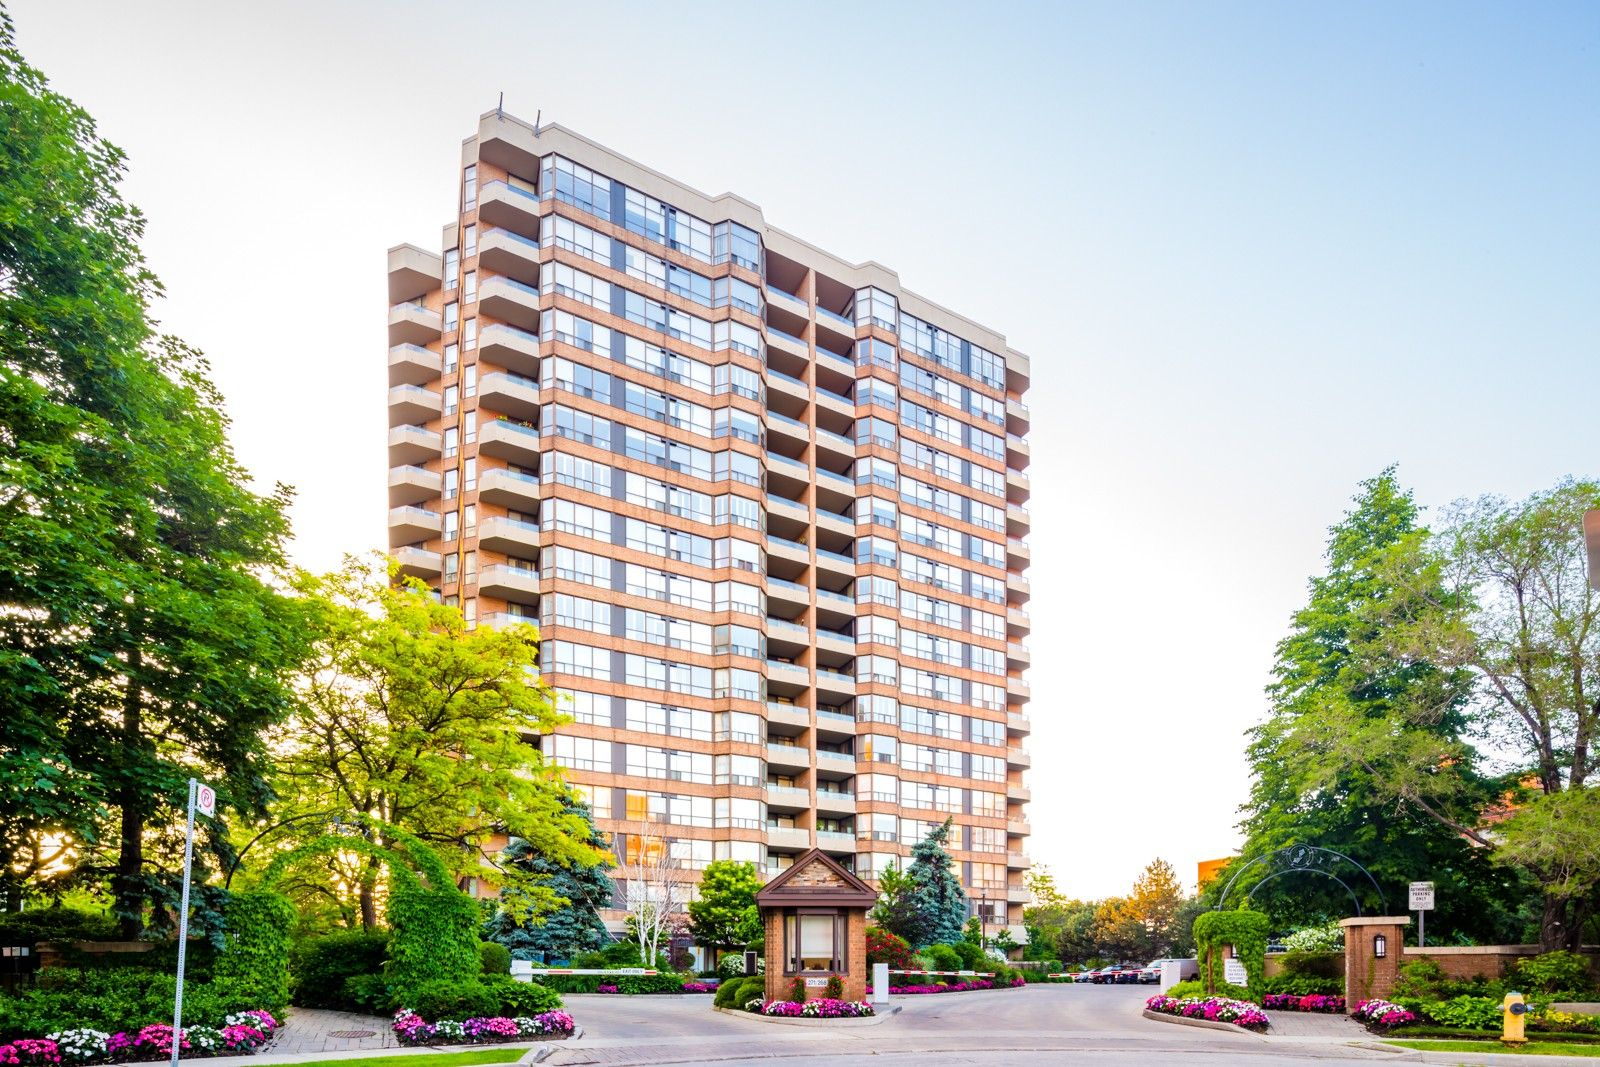 Ridley Boulevard II Condos at 268 Ridley Blvd. This condo is located in  North York, Toronto